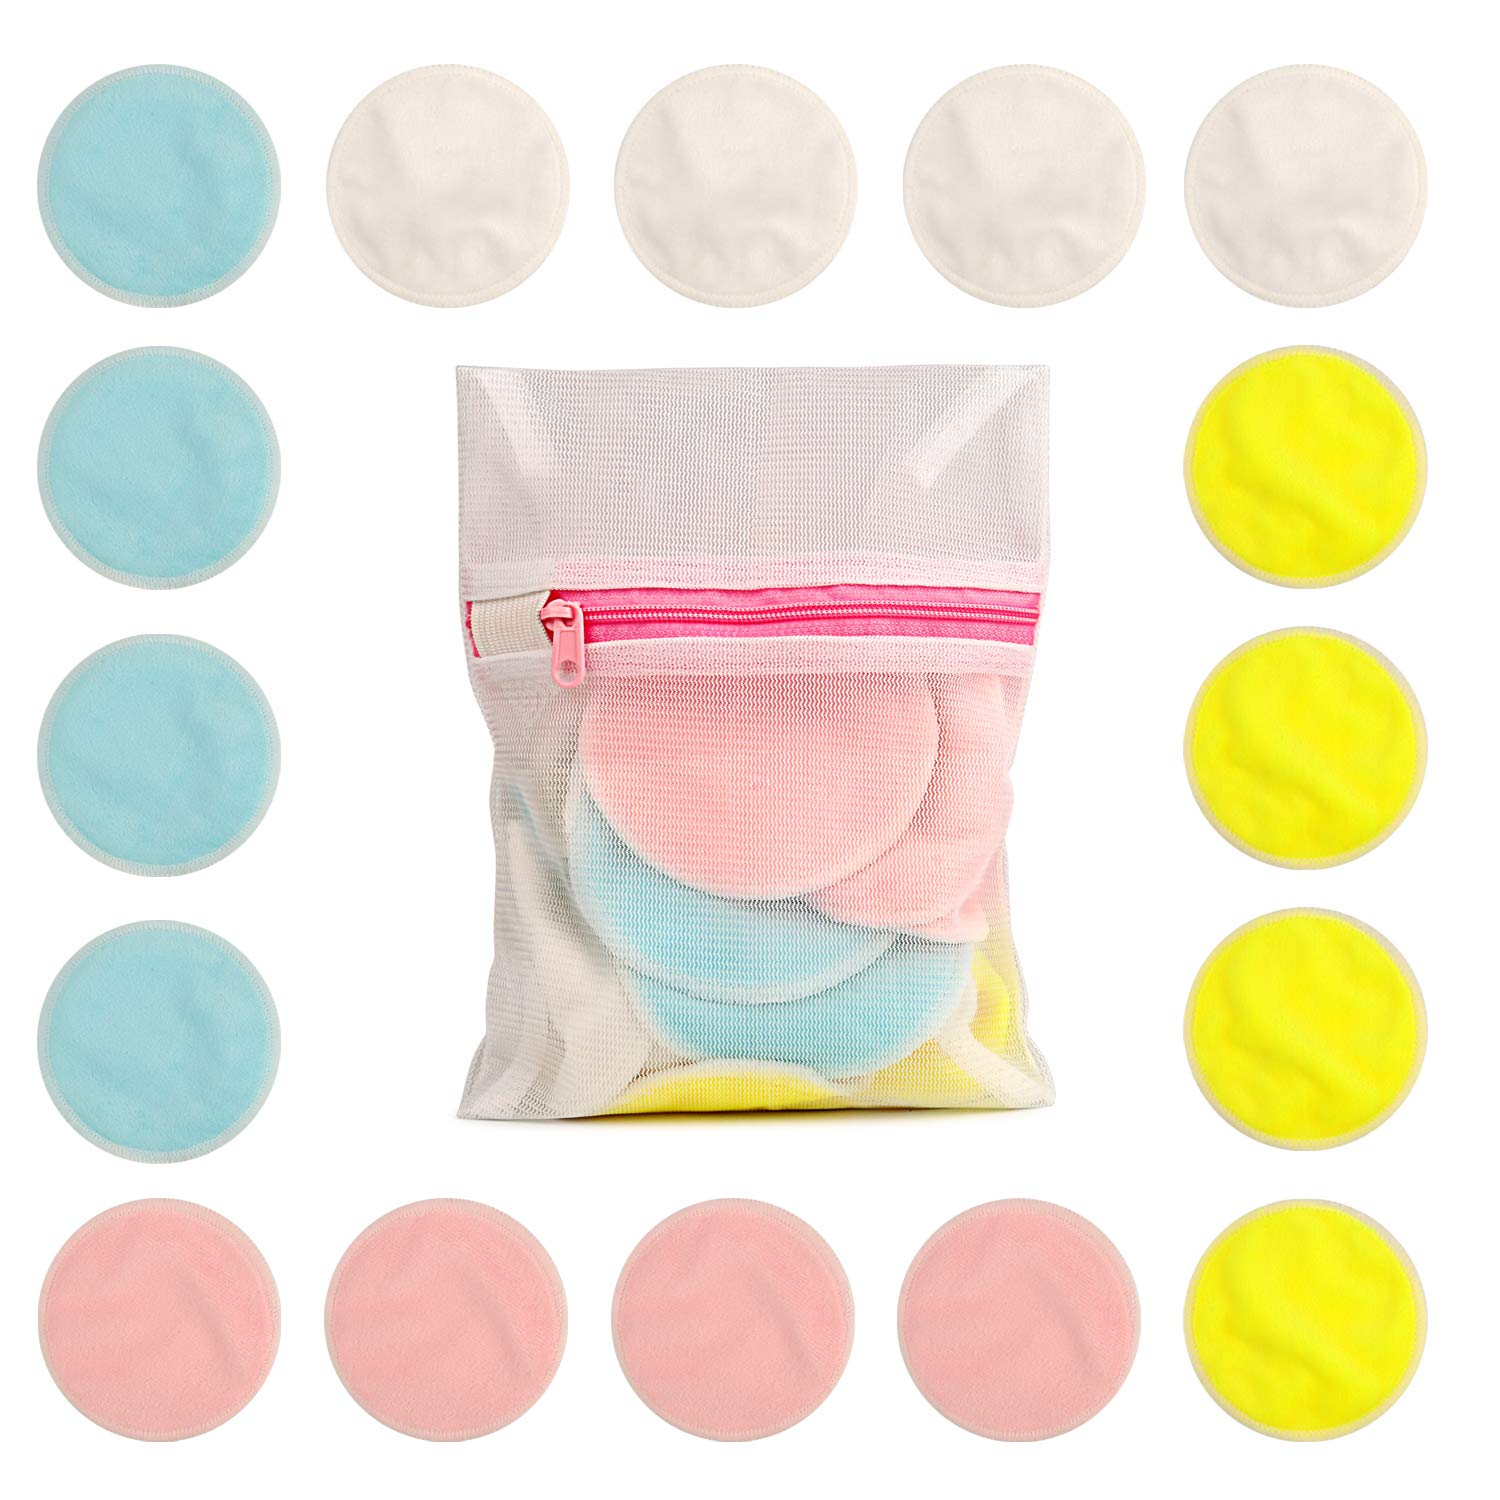 16pcs 3Inch Small Bamboo Cotton Facial rounds makeup Remover Pads Reusable Washable facial wipes cotton pads with Laundry Bag Shenzhen Meiyijia Trading Co. Ltd